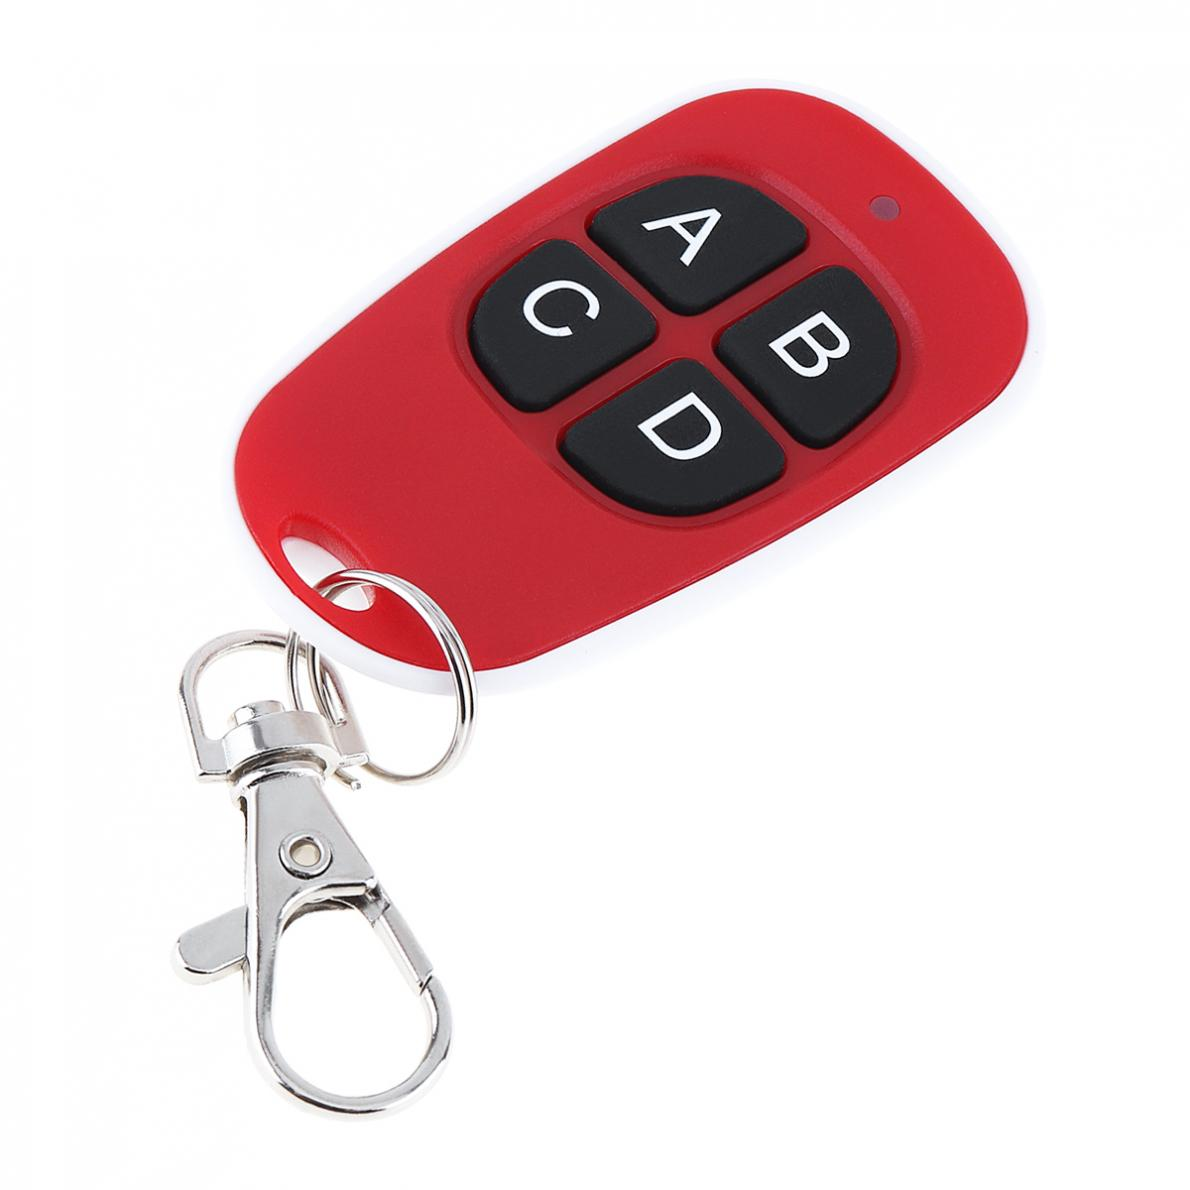 plastic 4 Channel Duplicator Copy Wireless Remote Control with Keychain and Indicator Light for Universal Door Gate New in Remote Controls from Consumer Electronics